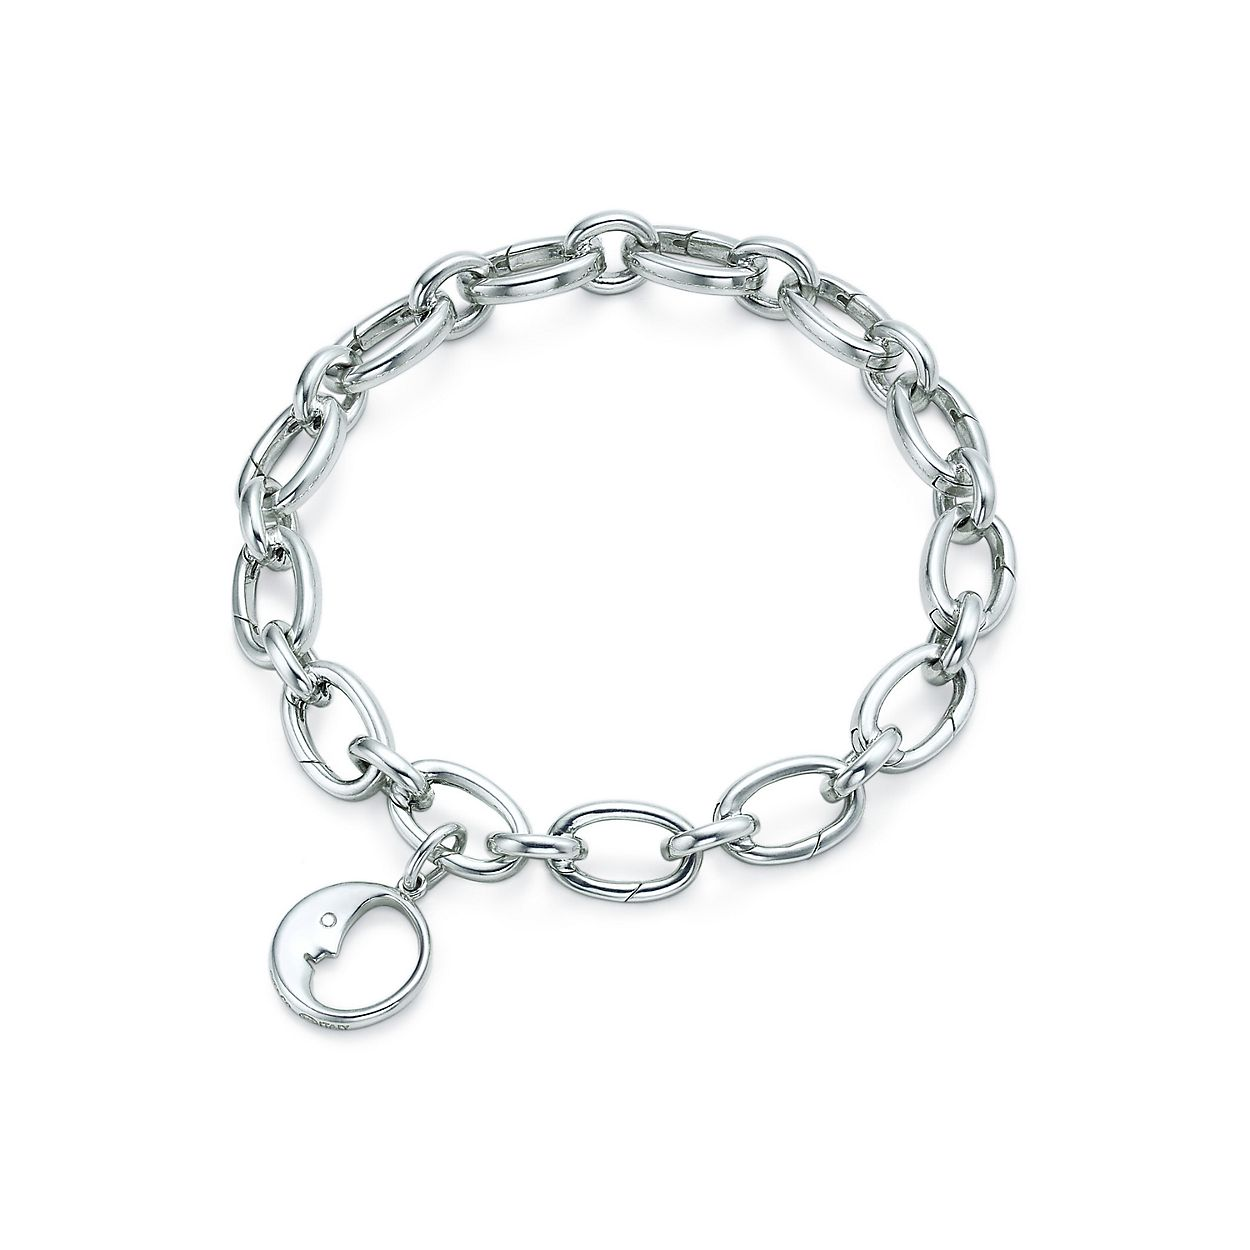 Man in the Moon charm in sterling silver Tiffany & Co. 2lL4s1w3